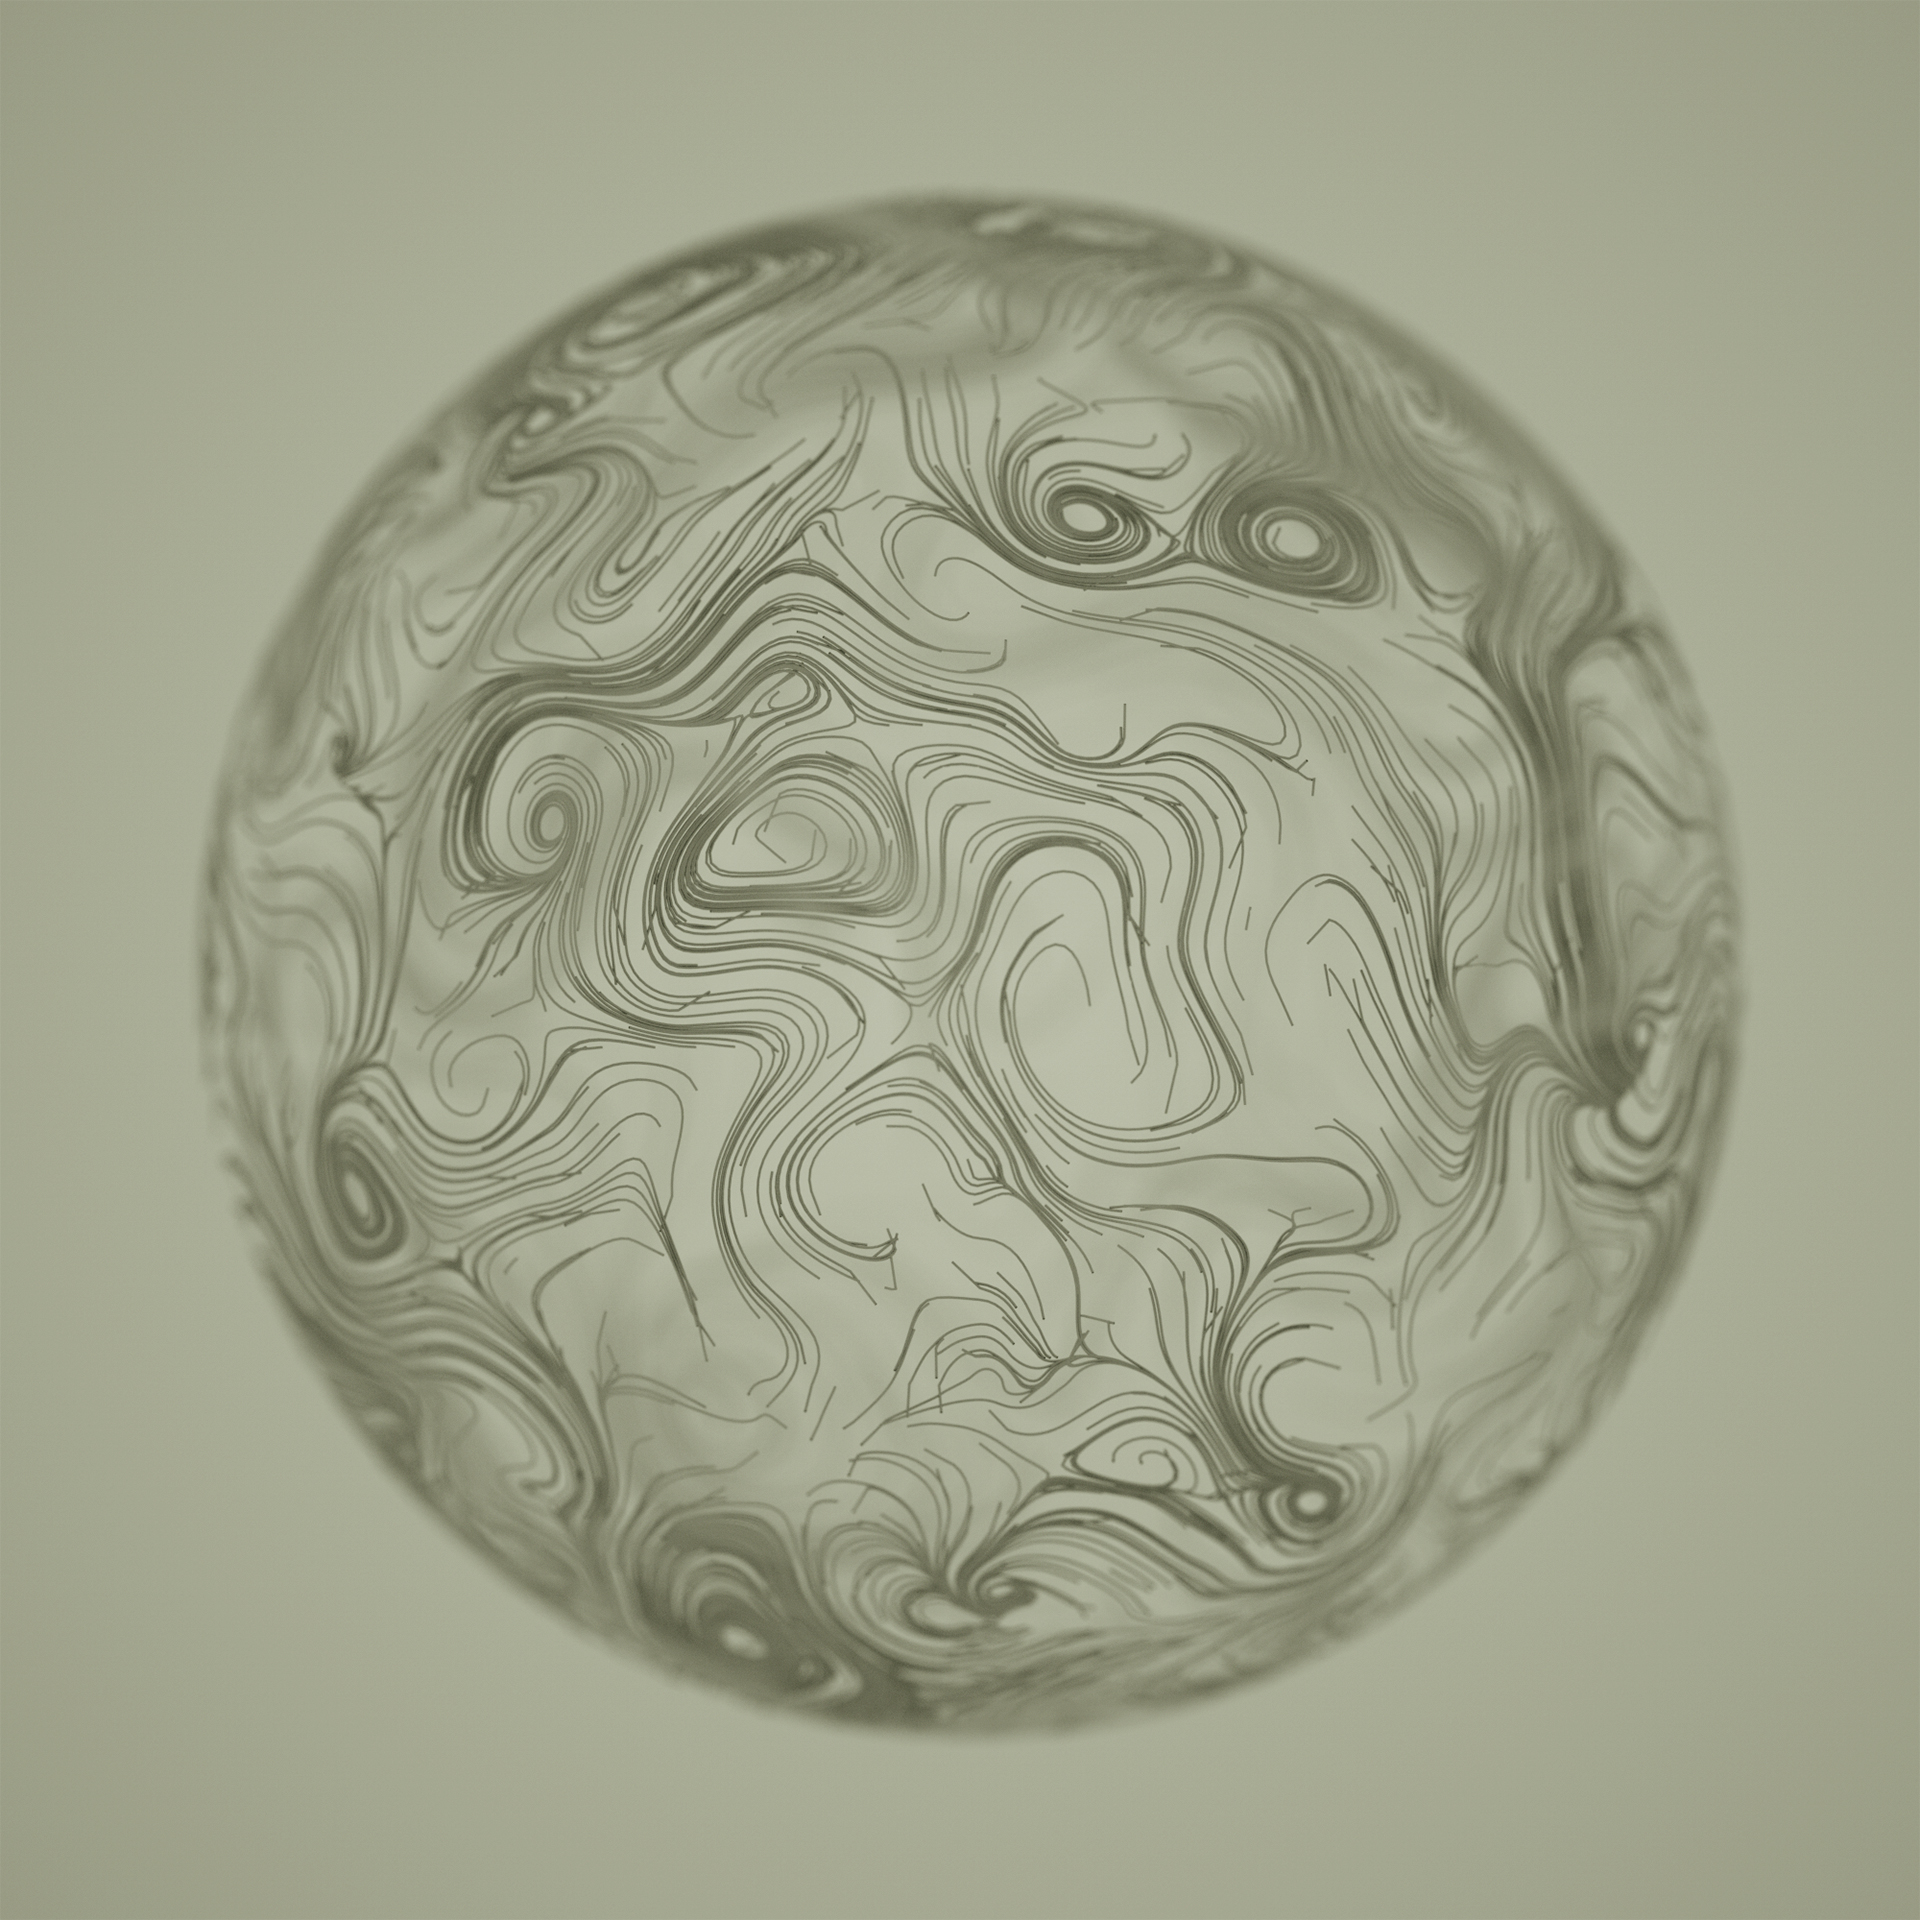 CREATING SWIRLY PATTERNS WITH X-PARTICLES